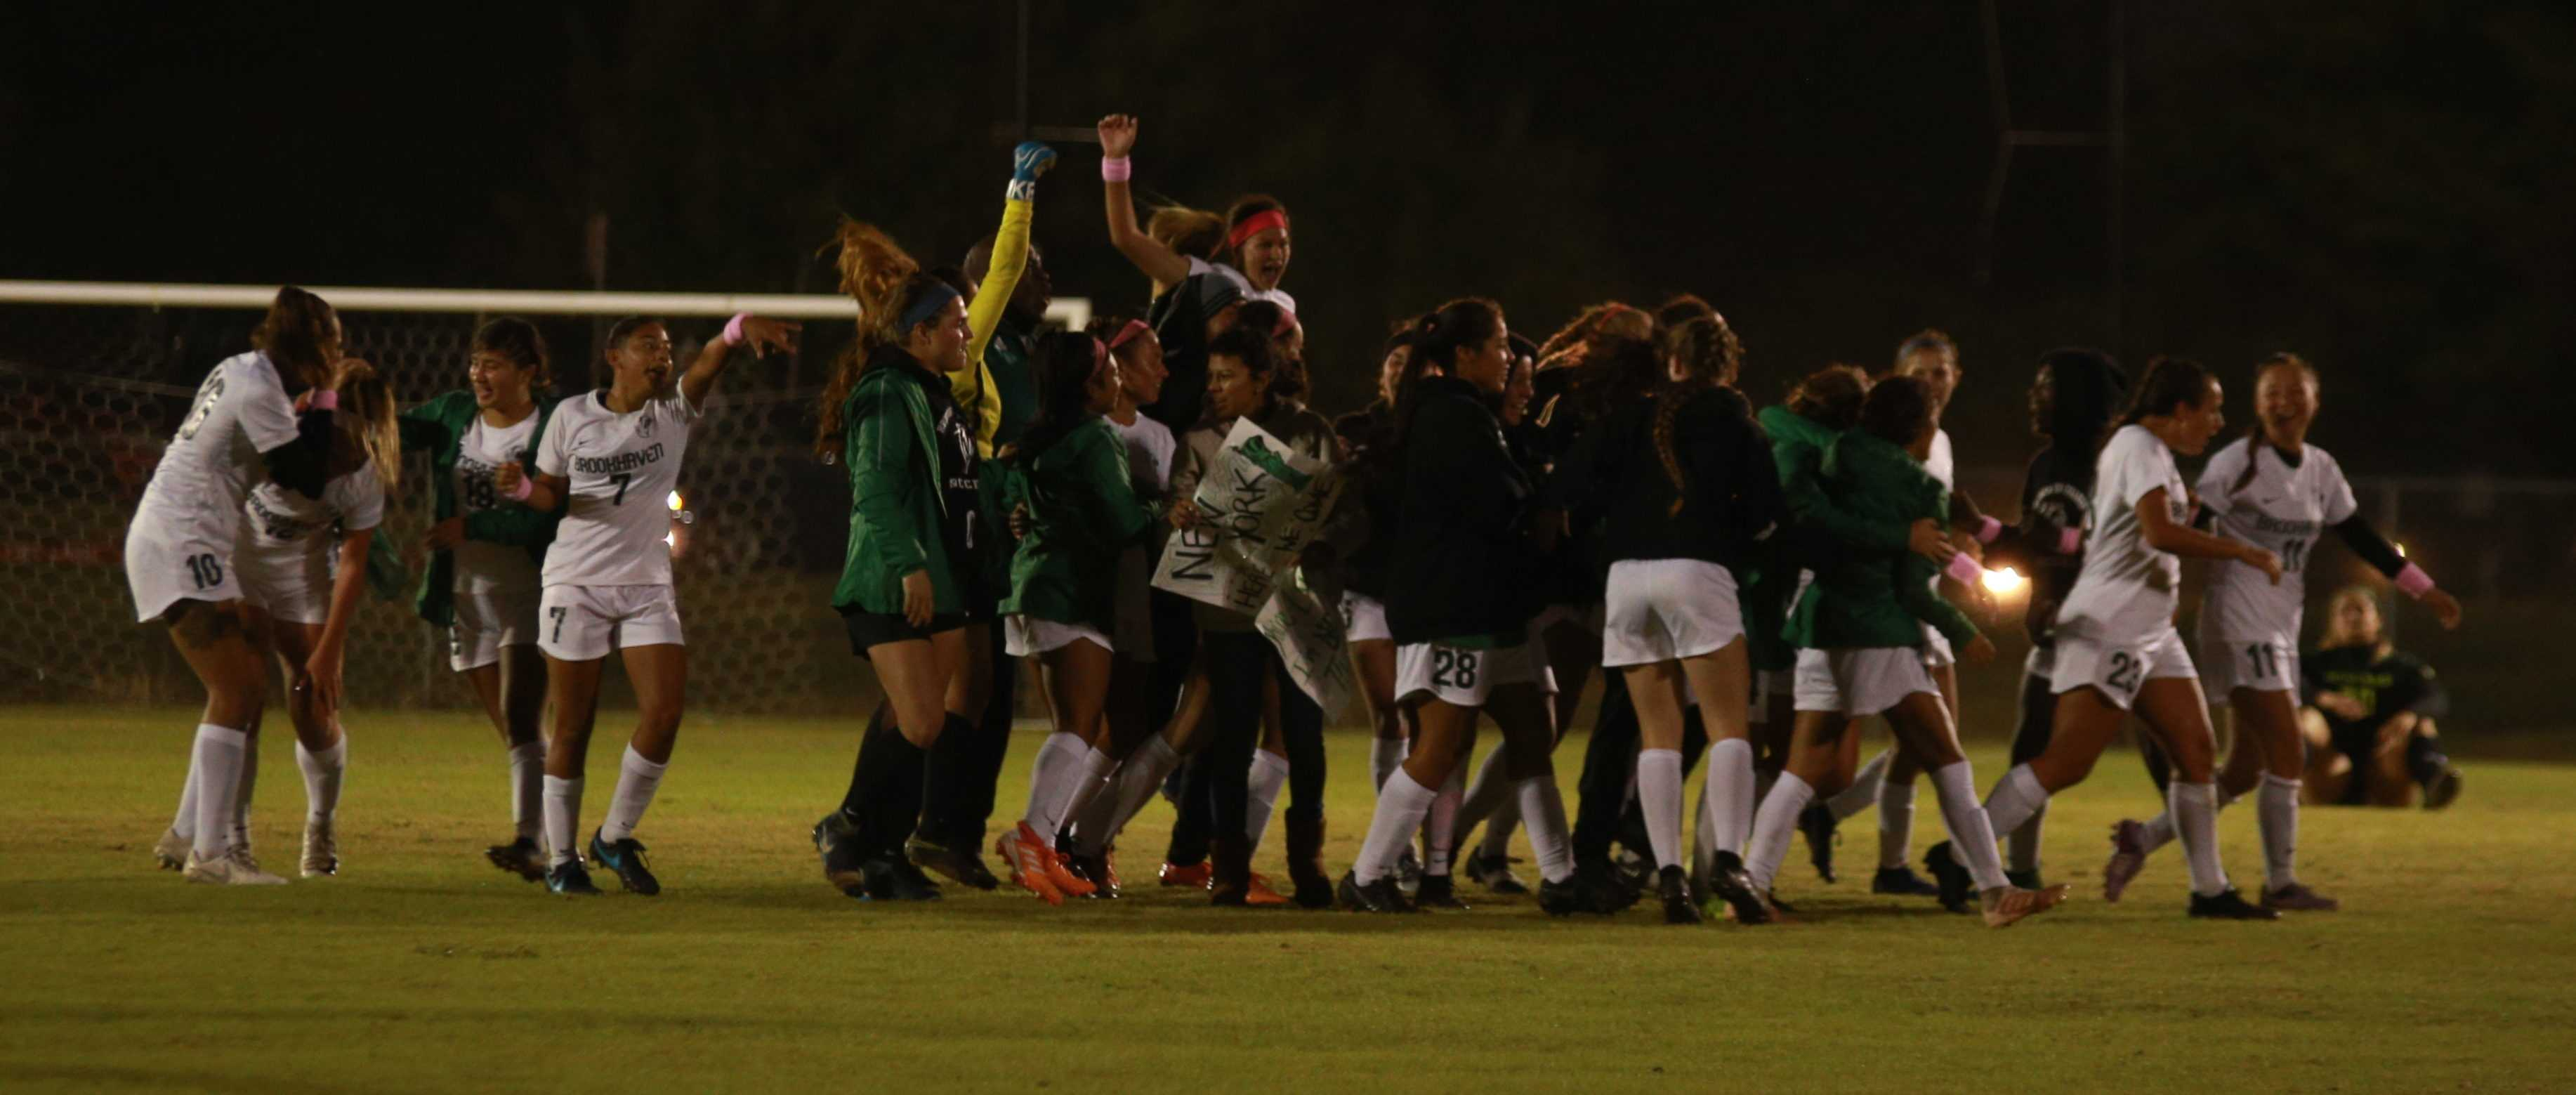 Photos by Brandon Donner | The Lady Bears celebrate their win against Richland College in the NJCAA Region V Championship game Oct. 28; Lady Bears forward Taylor Brown (#17) attempts a shot.